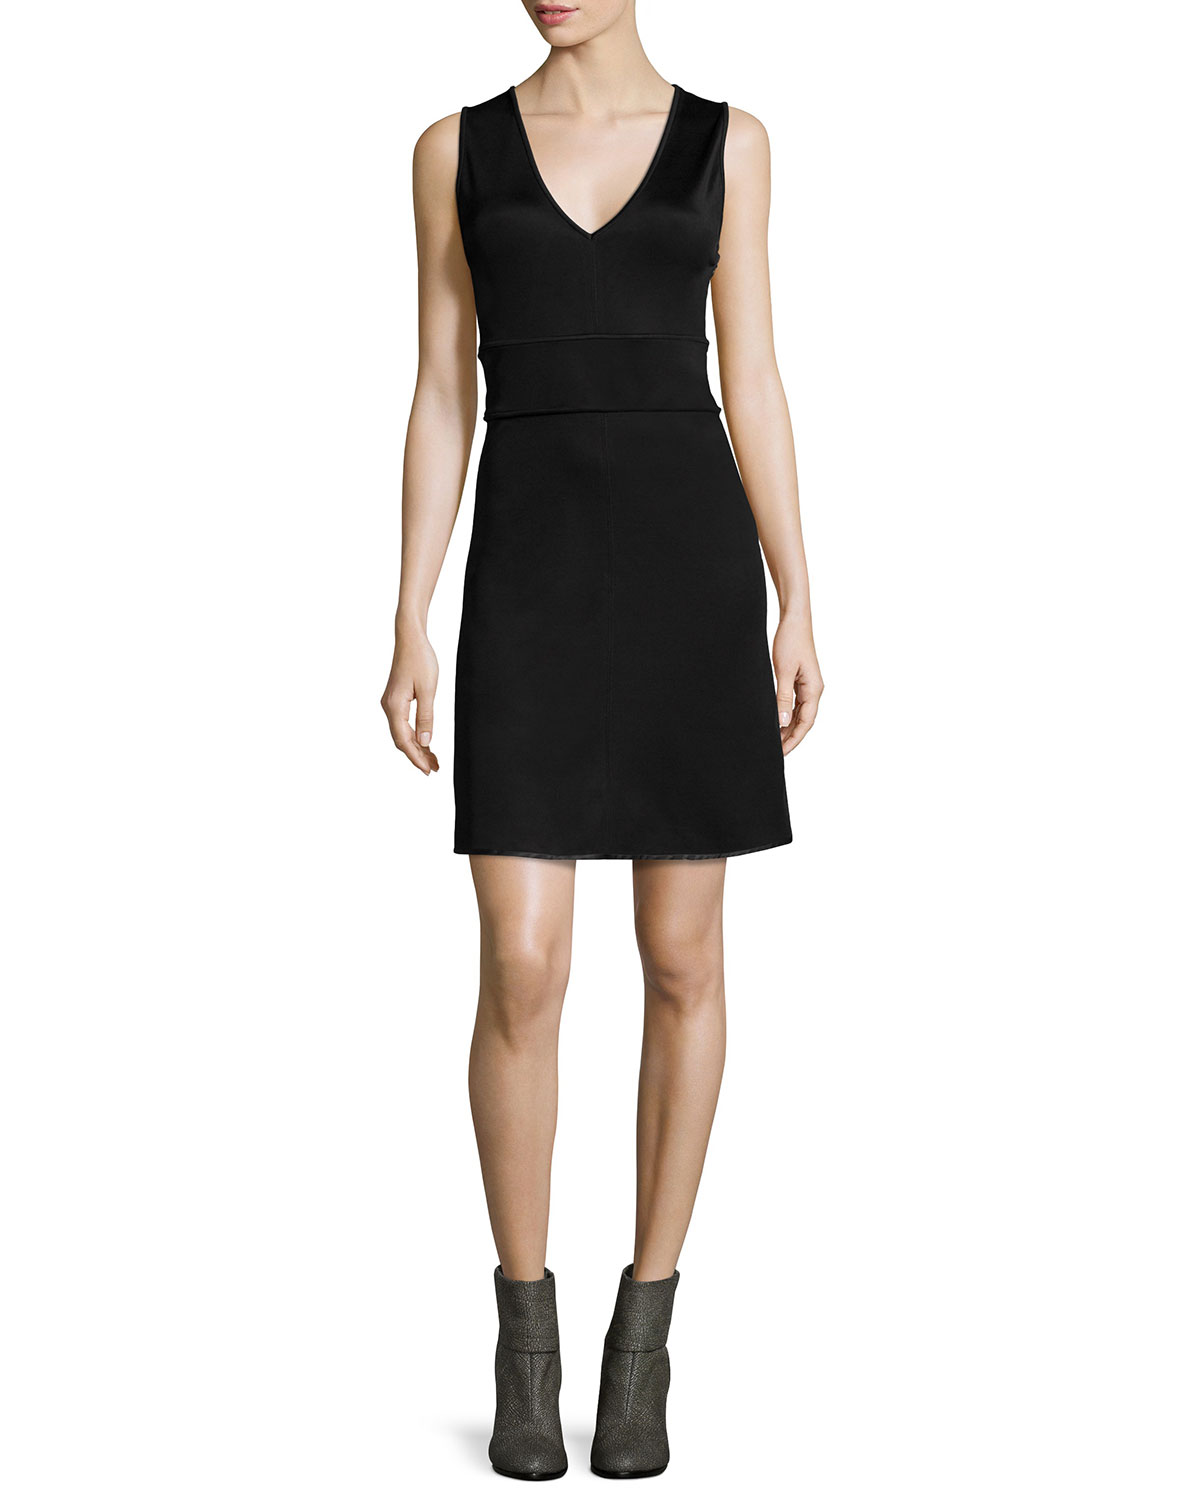 Dress A Back Black amp; Neiman Open Line Astrid Rag Bone Marcus 4ngw10x1q